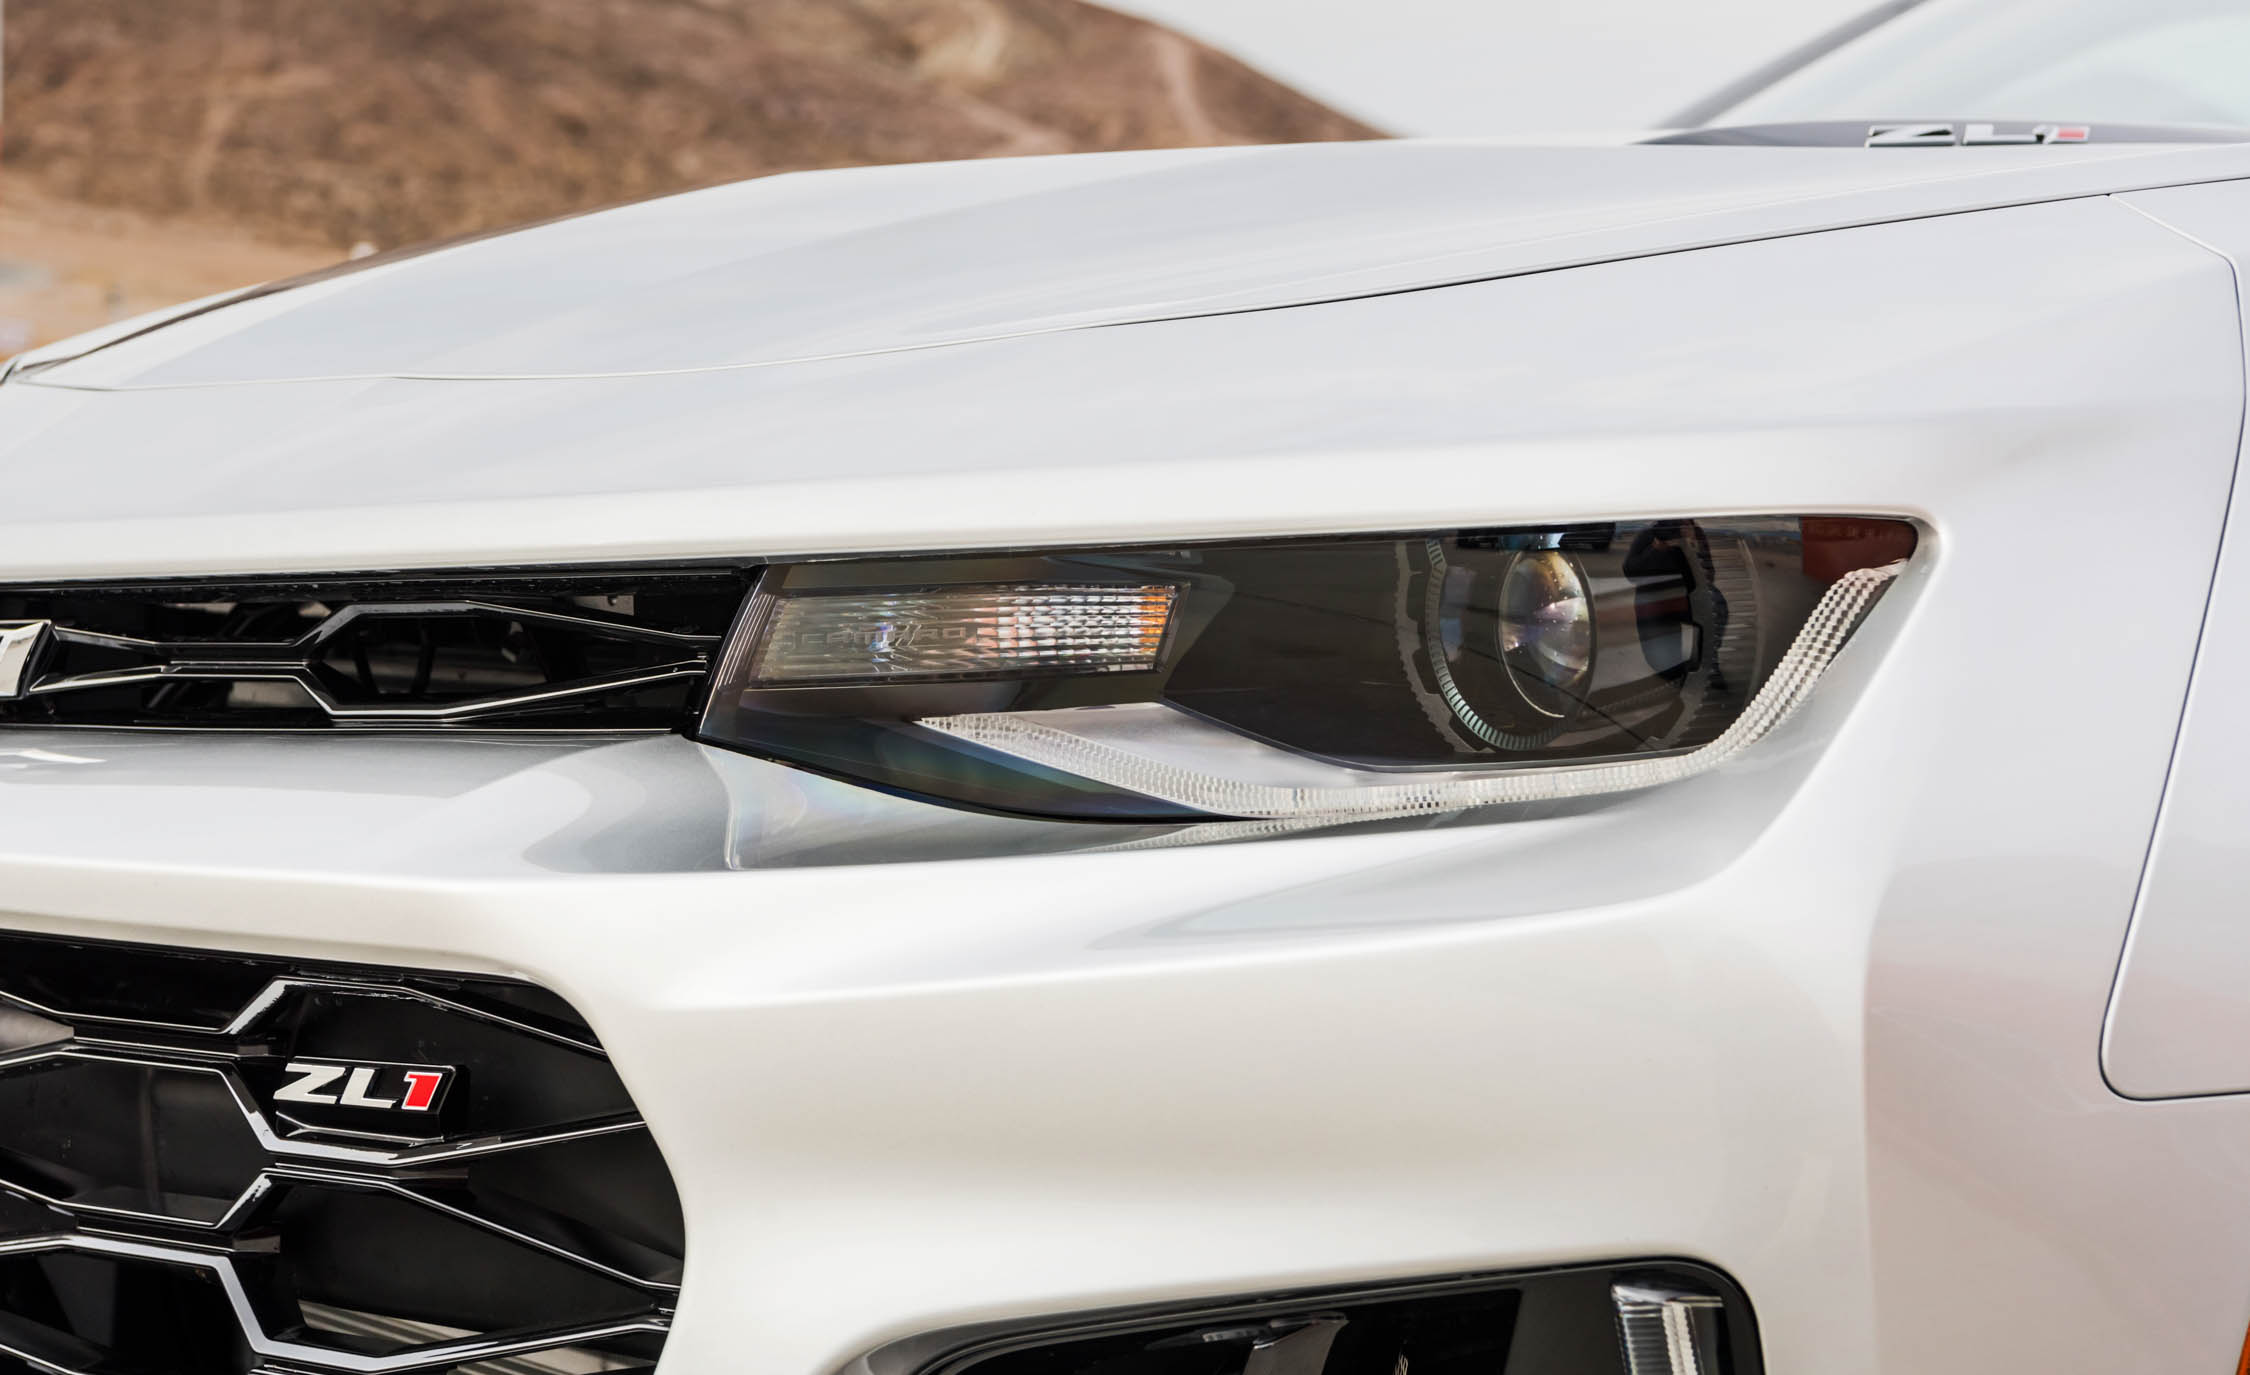 2017 Chevrolet Camaro ZL1 White Exterior View Headlight (Photo 50 of 62)